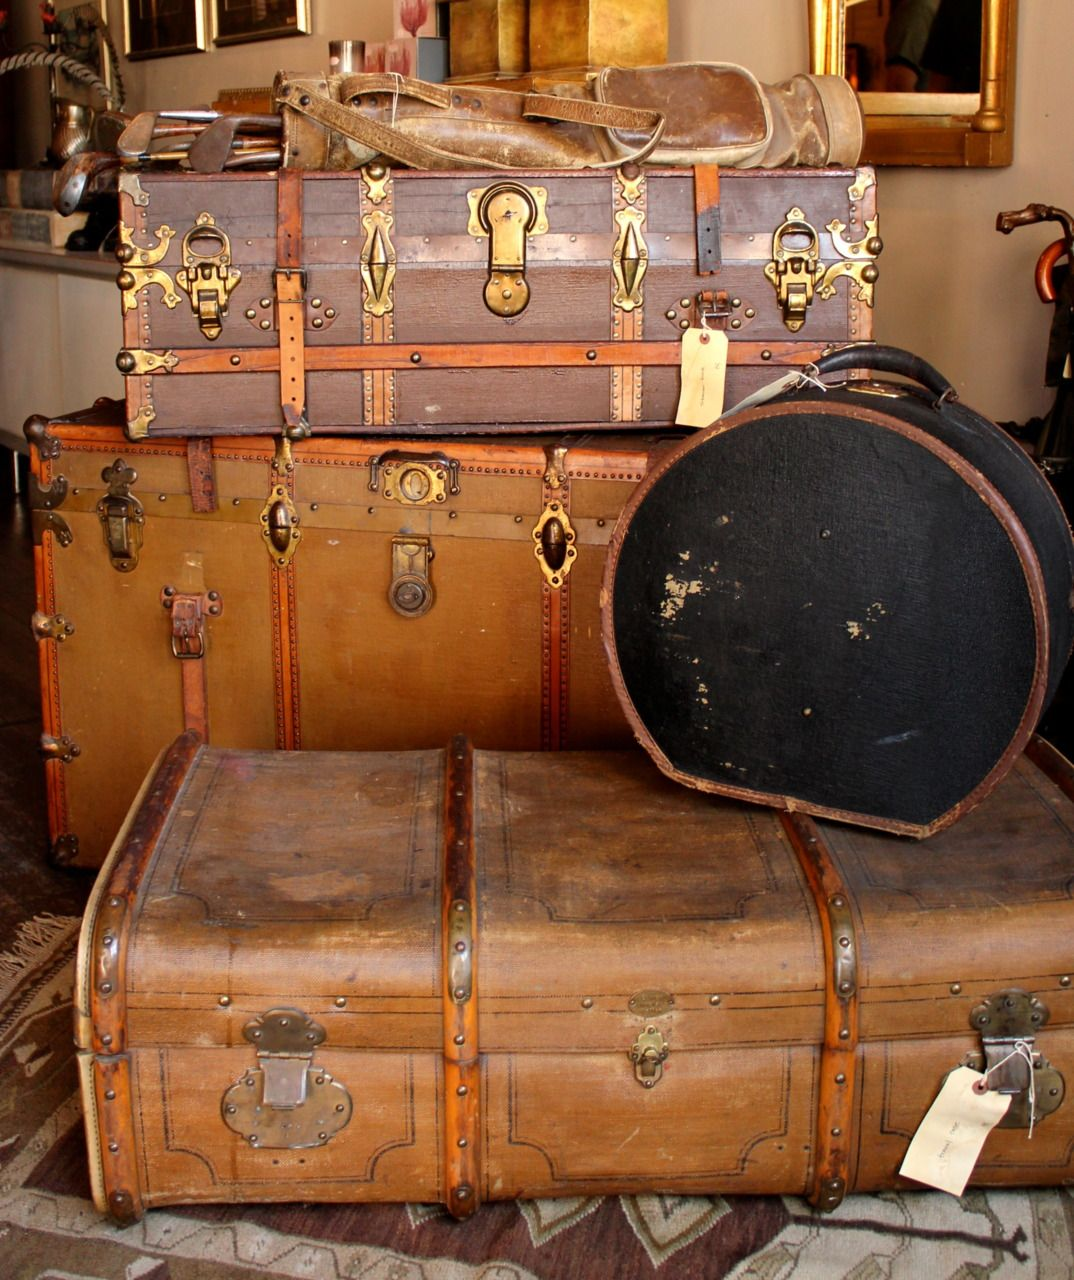 Vintage luggage - Ferien machen